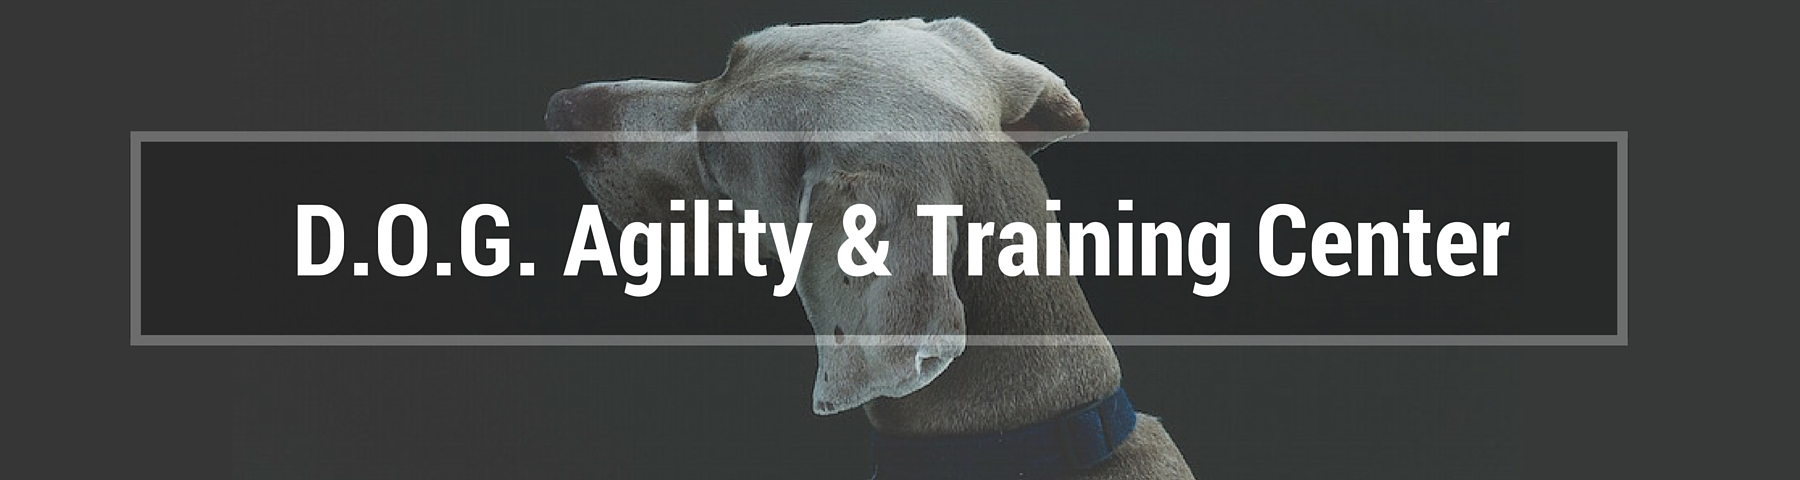 D.O.G. Agility and Training Center